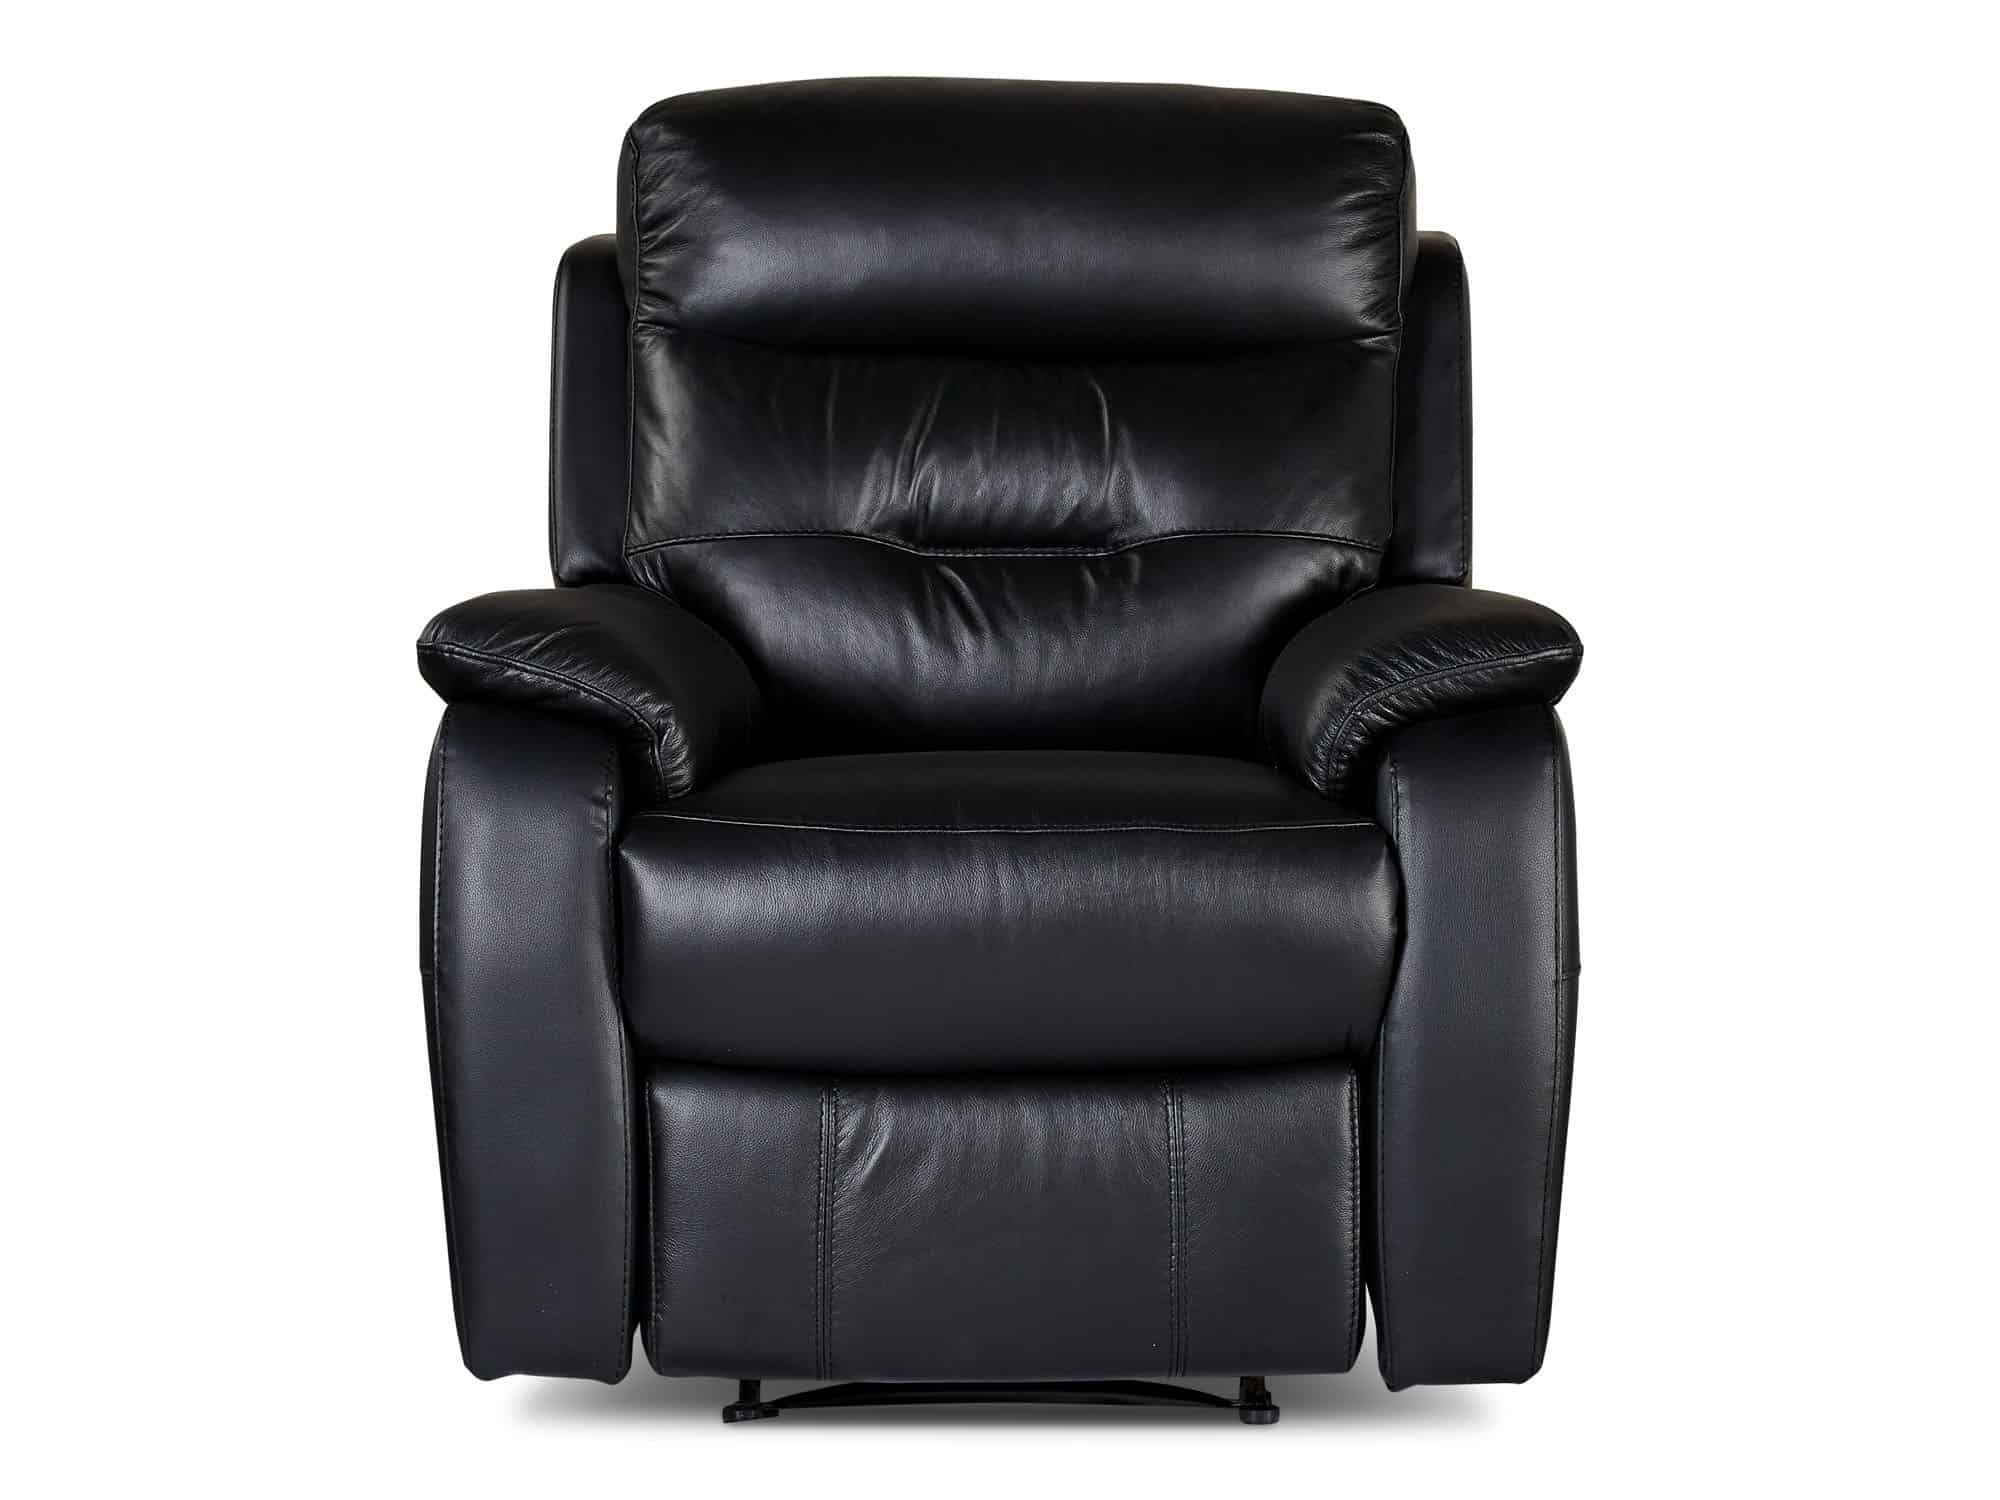 Kent recliner armchair leather  sc 1 st  Recliners | Big Save Furniture & Recliners | Big Save Furniture islam-shia.org